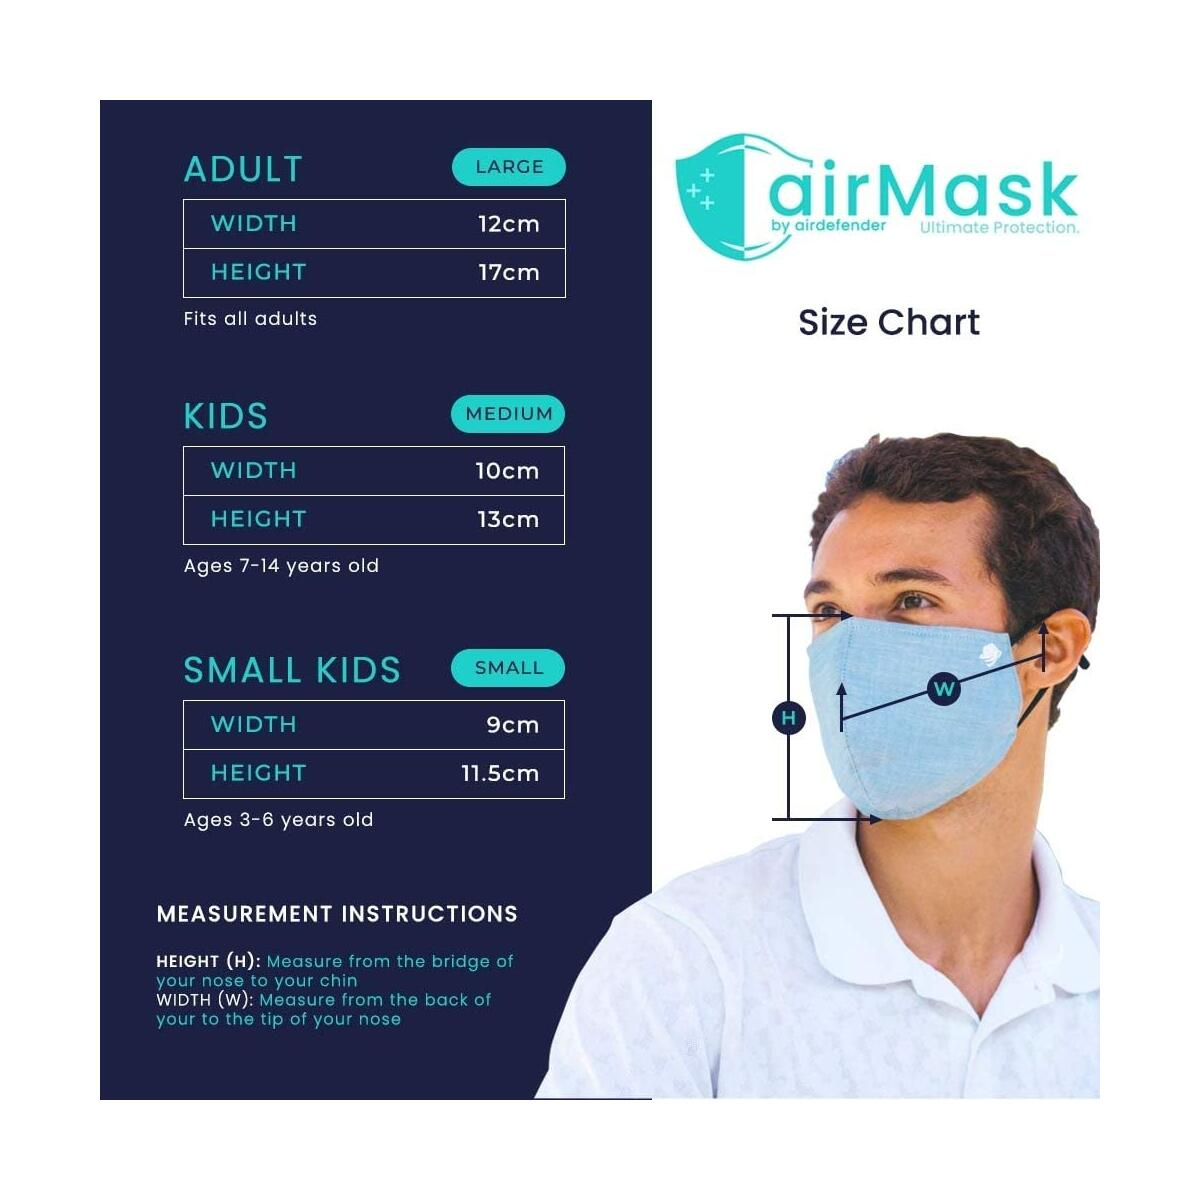 All-in-one Premium Cotton Reusable Face Masks With Filter Pocket, Ear loops and Nose Wire For Adult